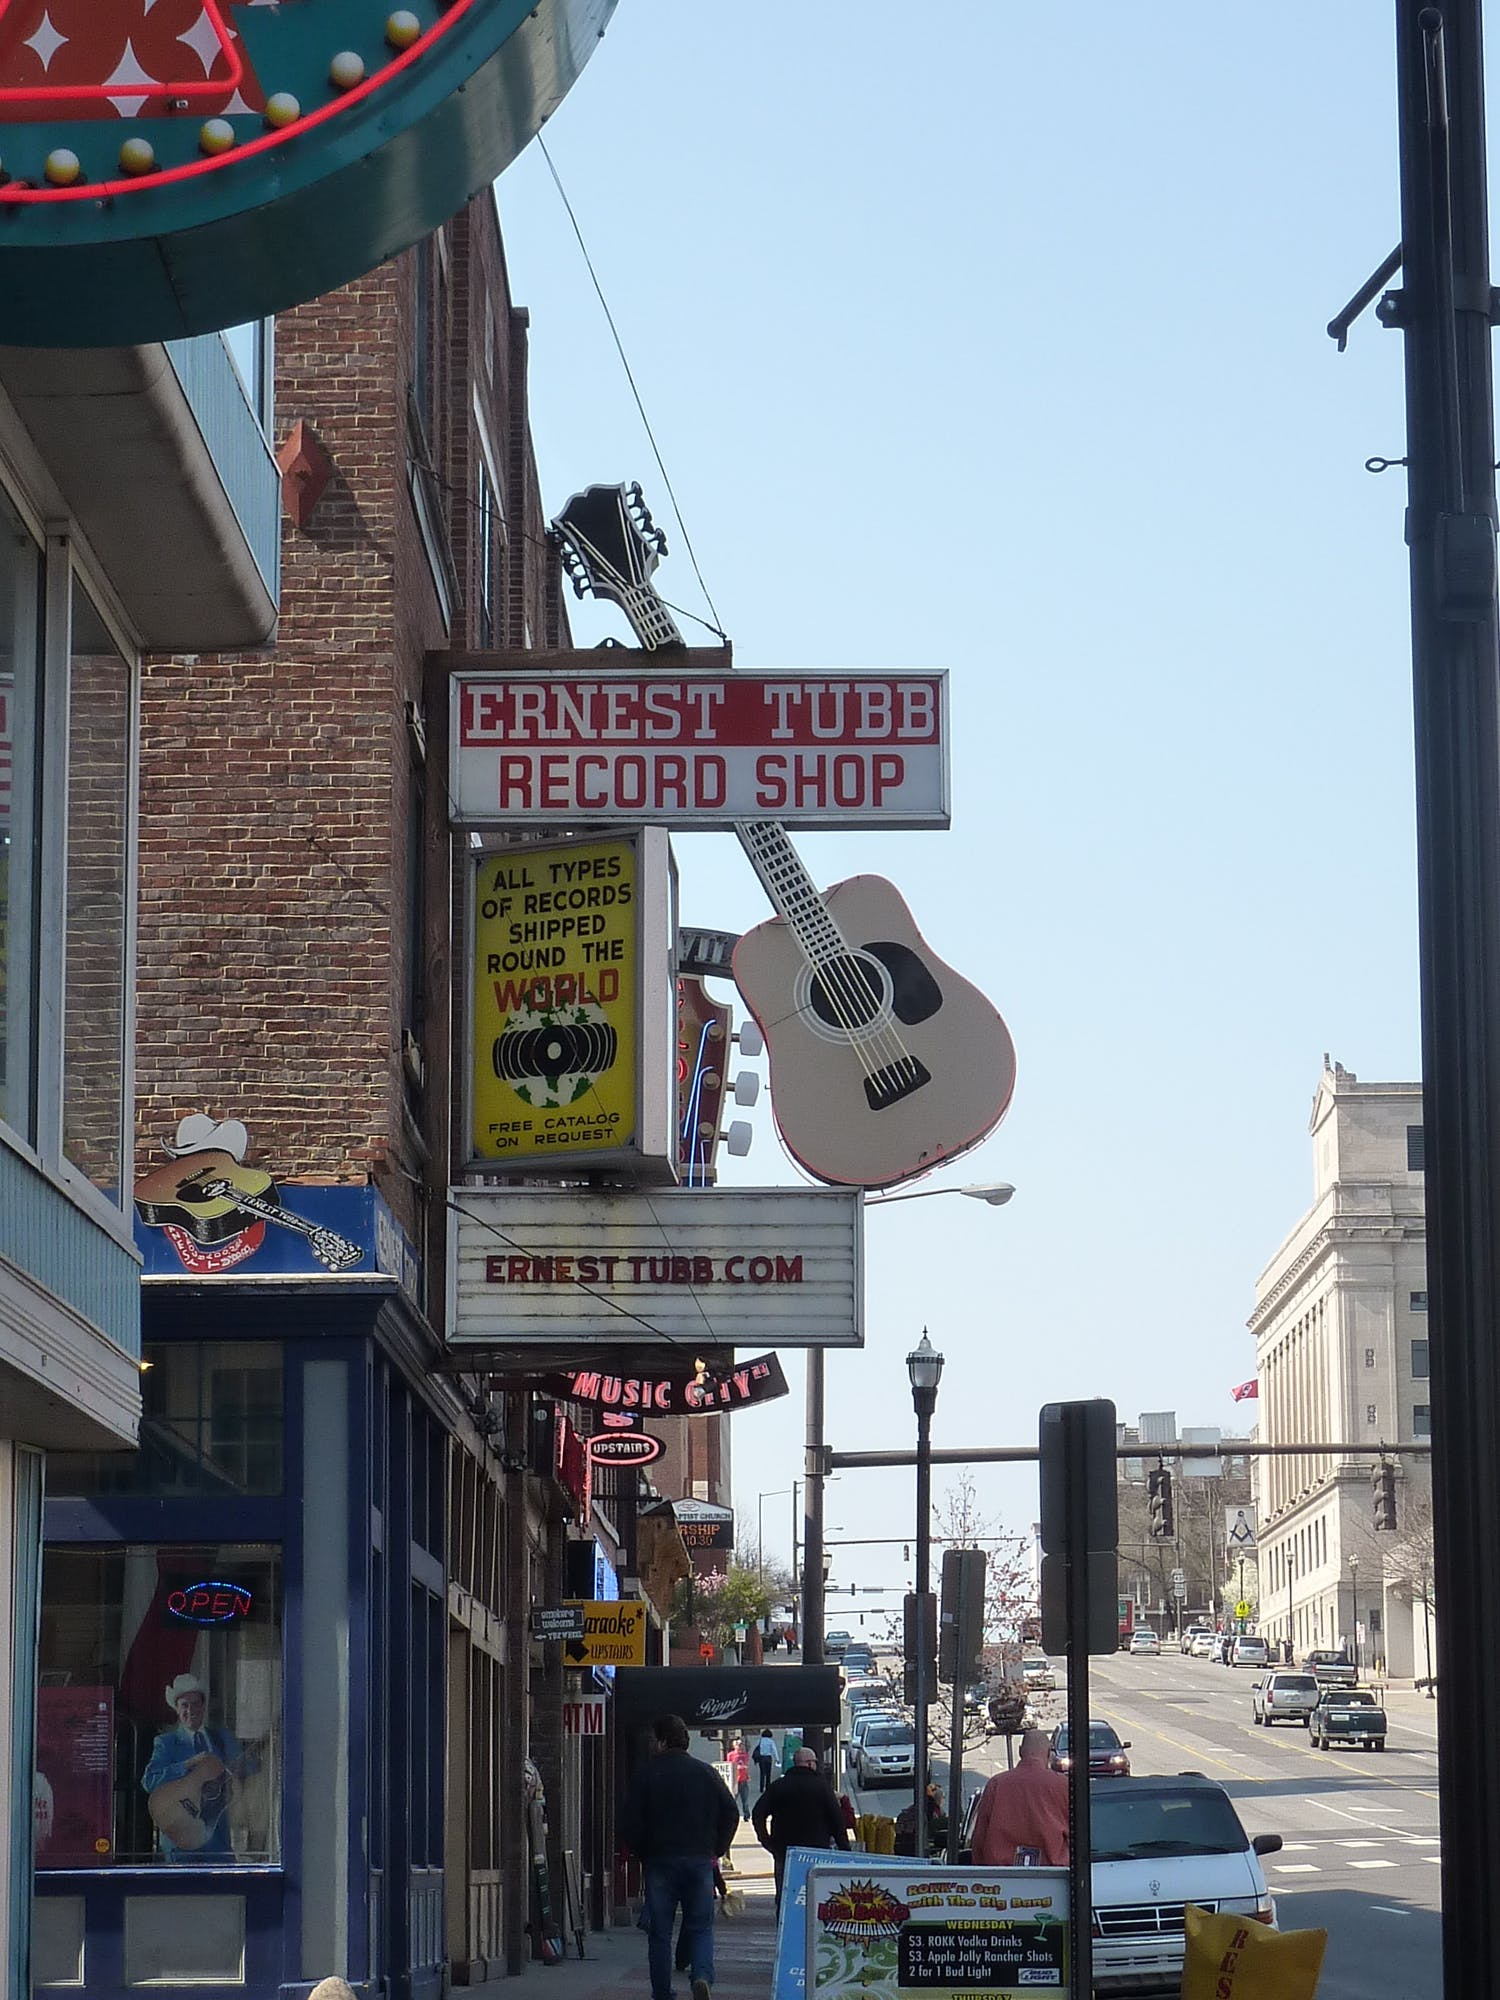 Ernest Tubb Record Shop - Record Store Image